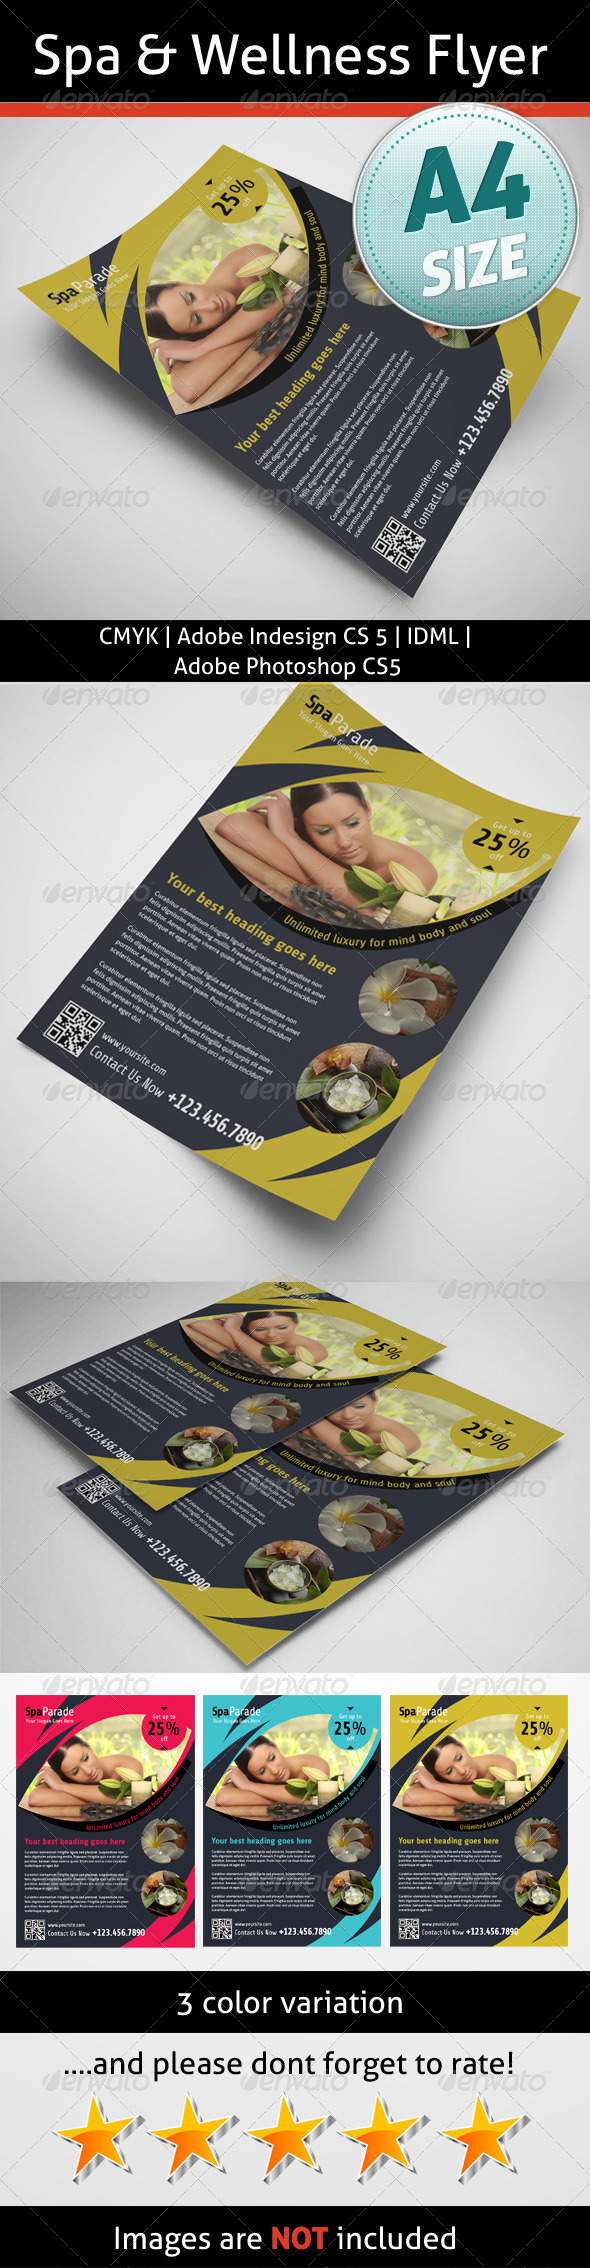 Spa & Wellness Flyer - Corporate Flyers